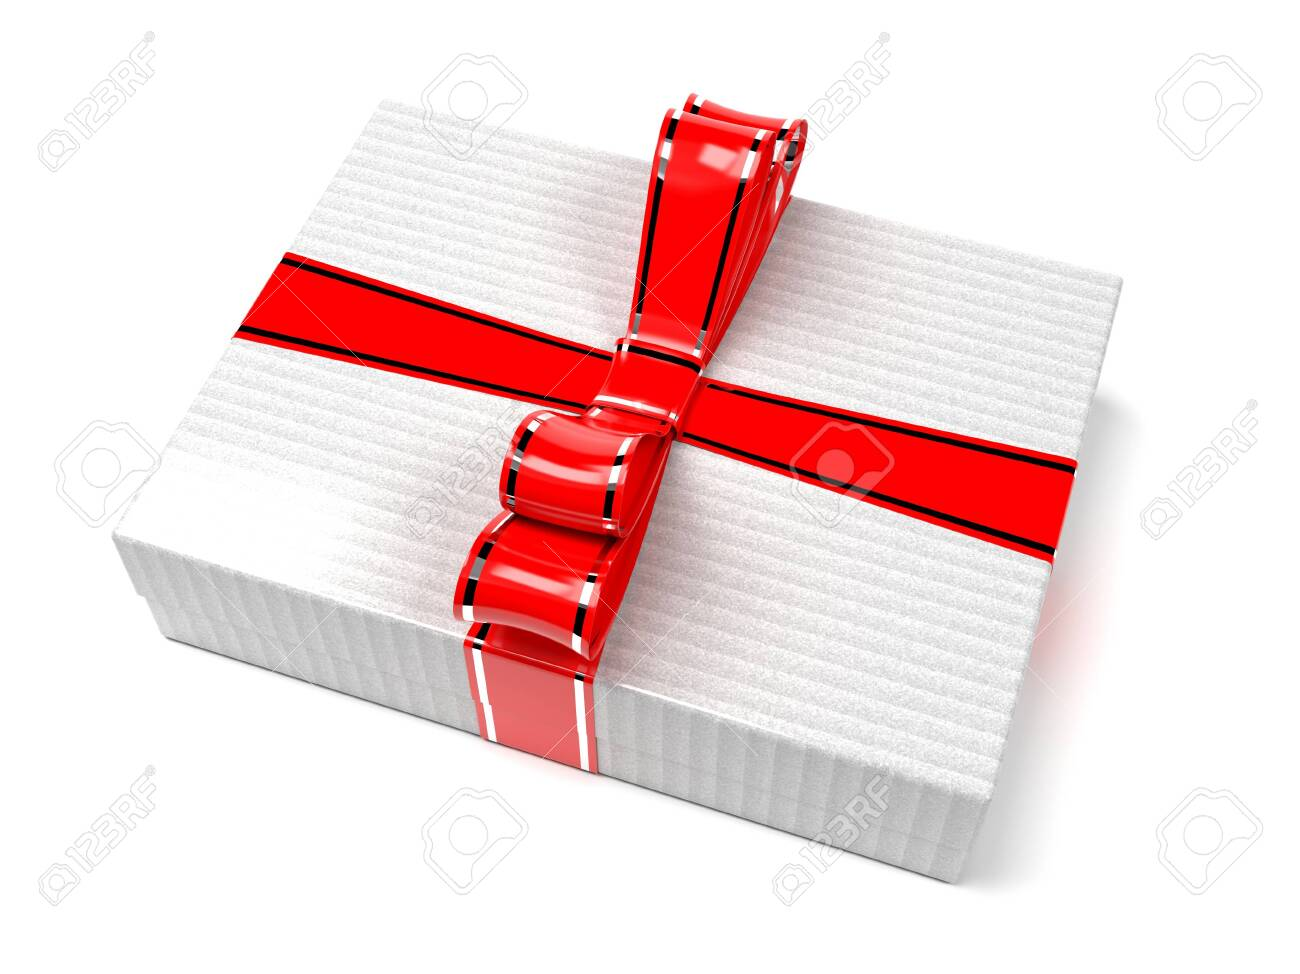 Gift box decorated with shiny red ribbon. 3d rendering illustration isolated on white background - 150521033